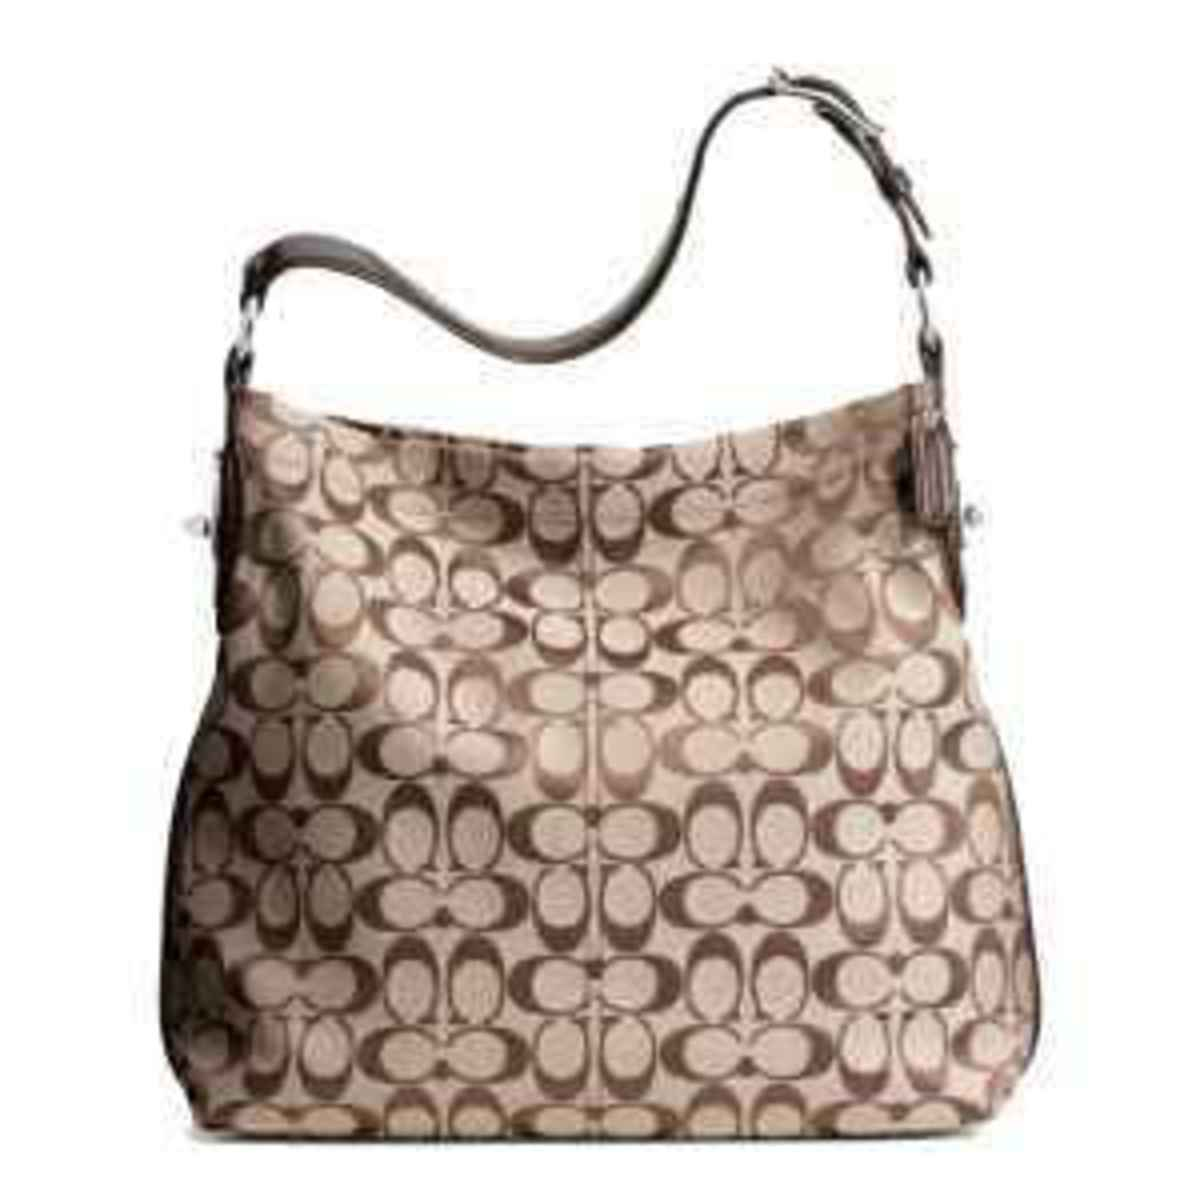 REAL Coach signature C material. The C's can be split right down the middle of the purse.